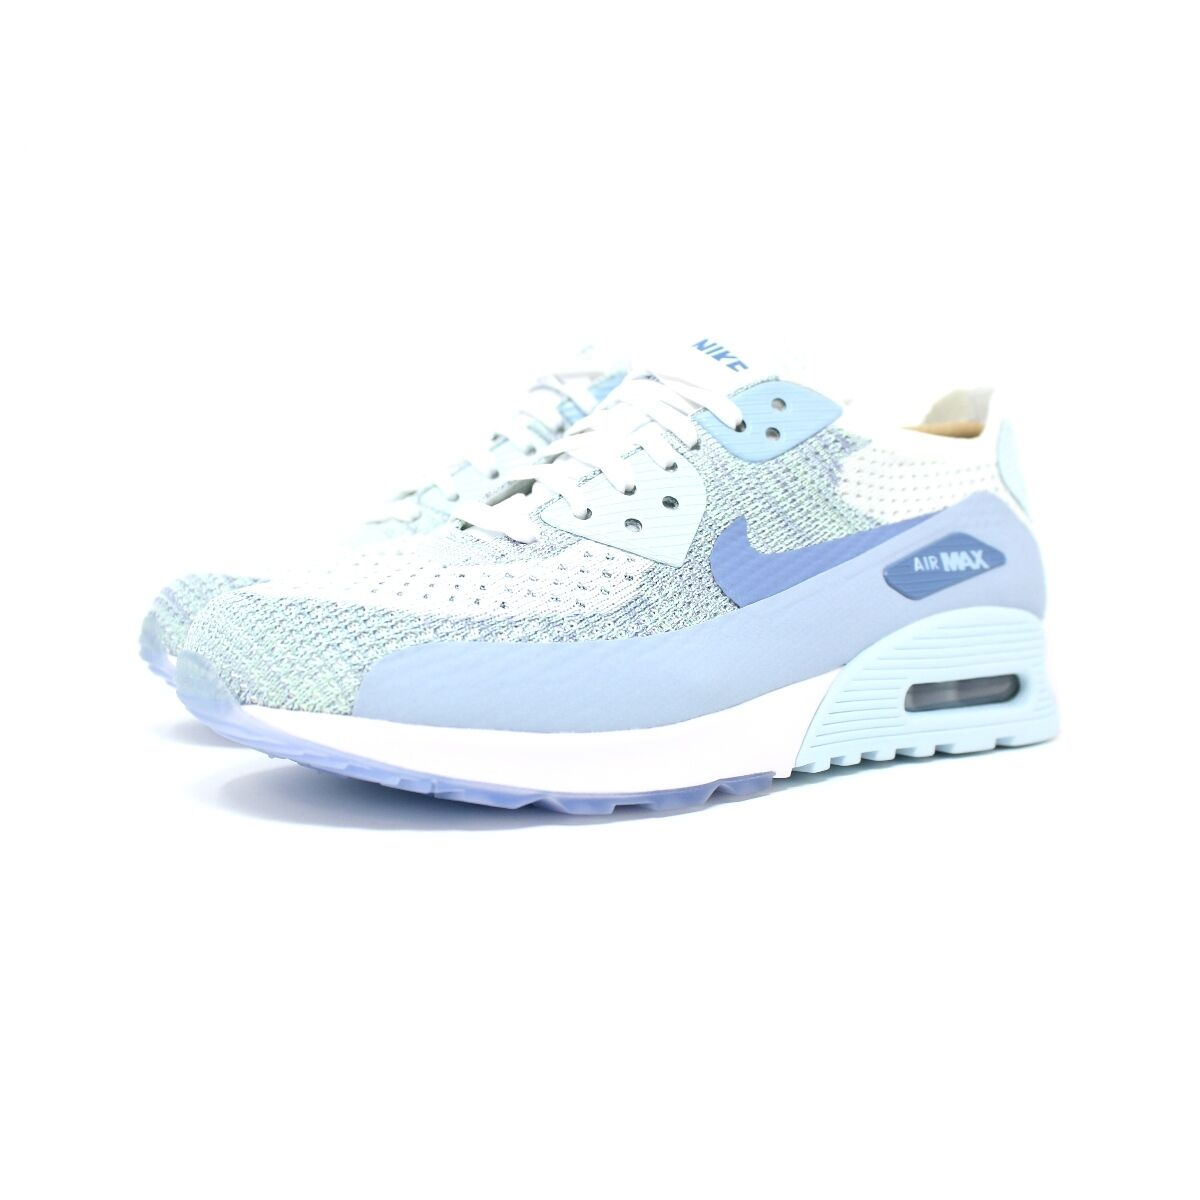 info for 25432 1d158 ... order nike w air max 90 ultra 2.0 flyknit 12 sz 5 12 flyknit aad4a4  bab79